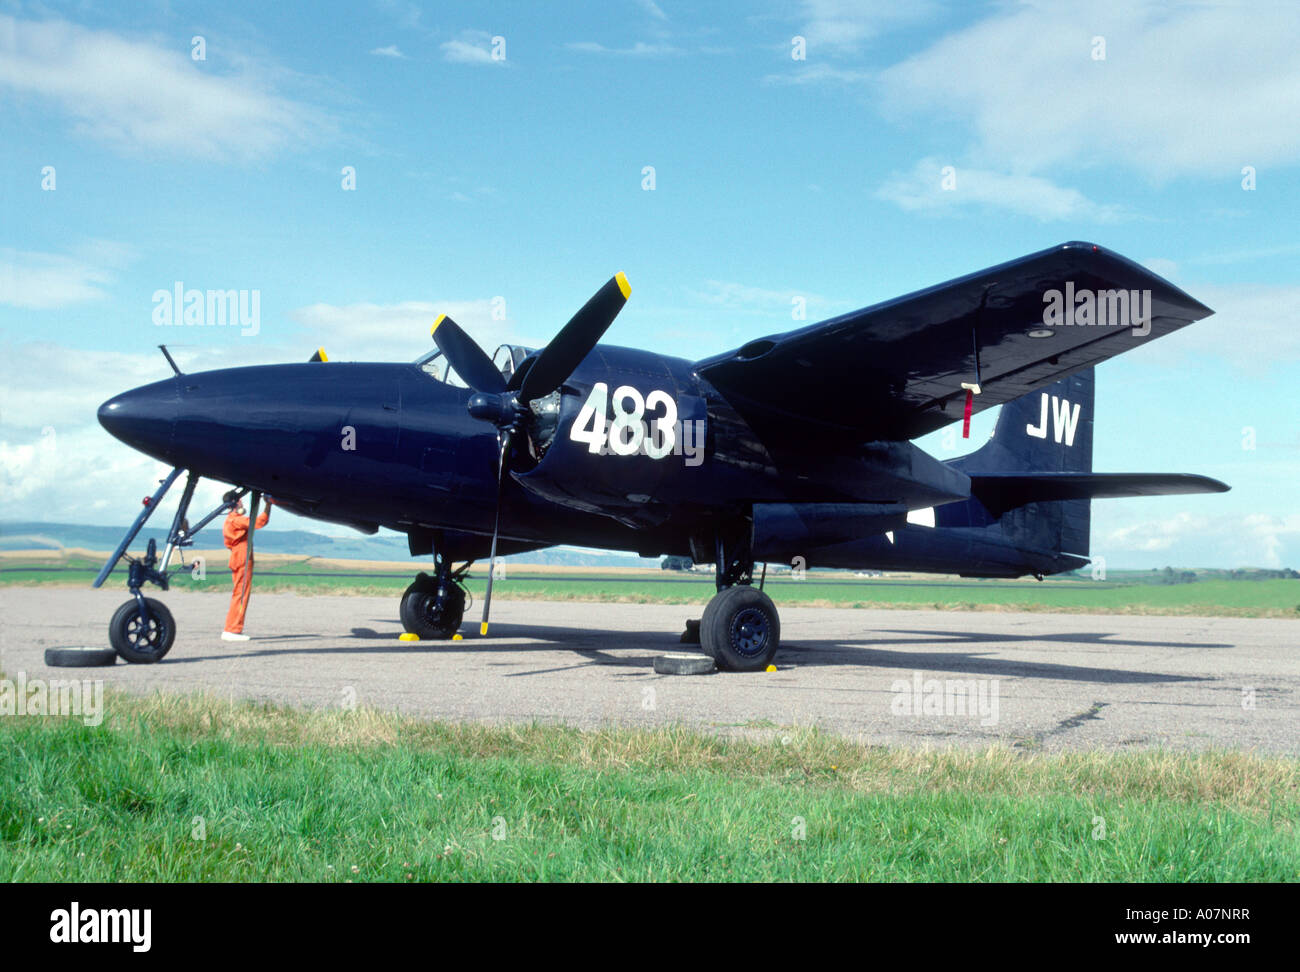 Grumman F7F Tigercat was the first twin-engined fighter aircraft to enter sevice.  GAV 4013-382 - Stock Image